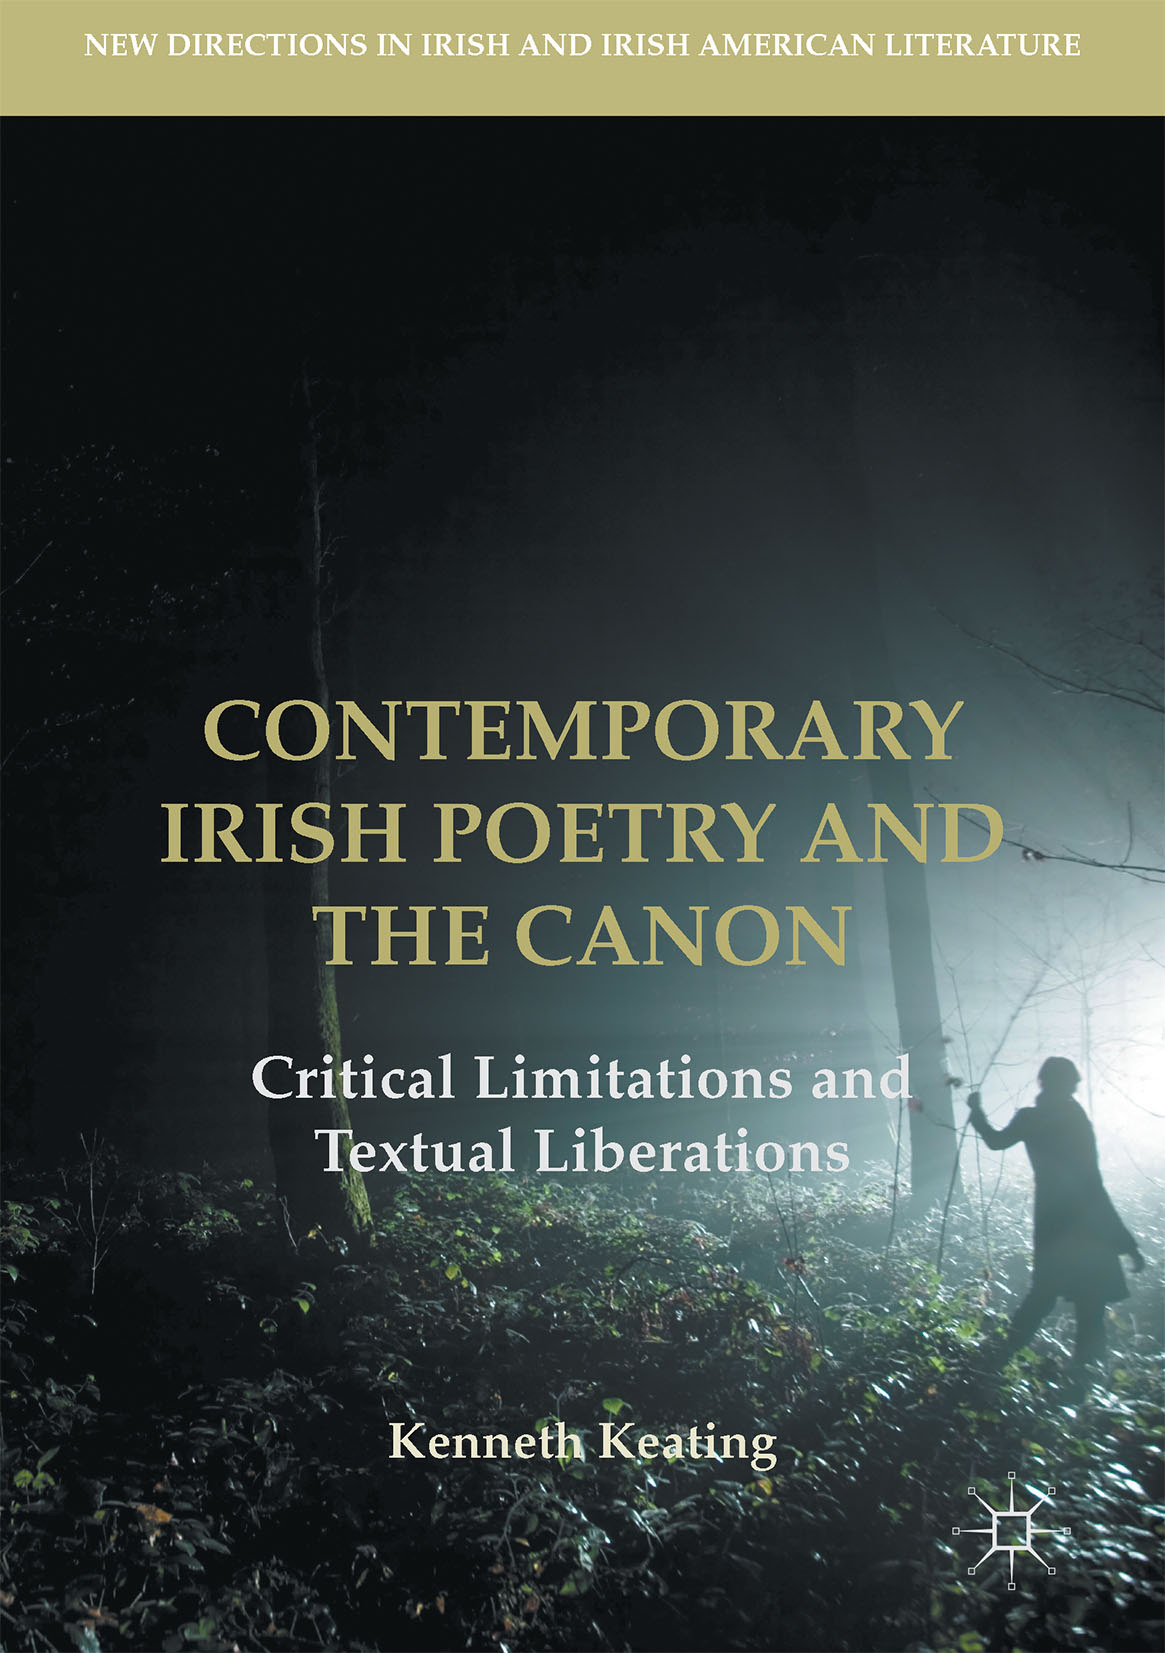 Keating, Kenneth - Contemporary Irish Poetry and the Canon, ebook